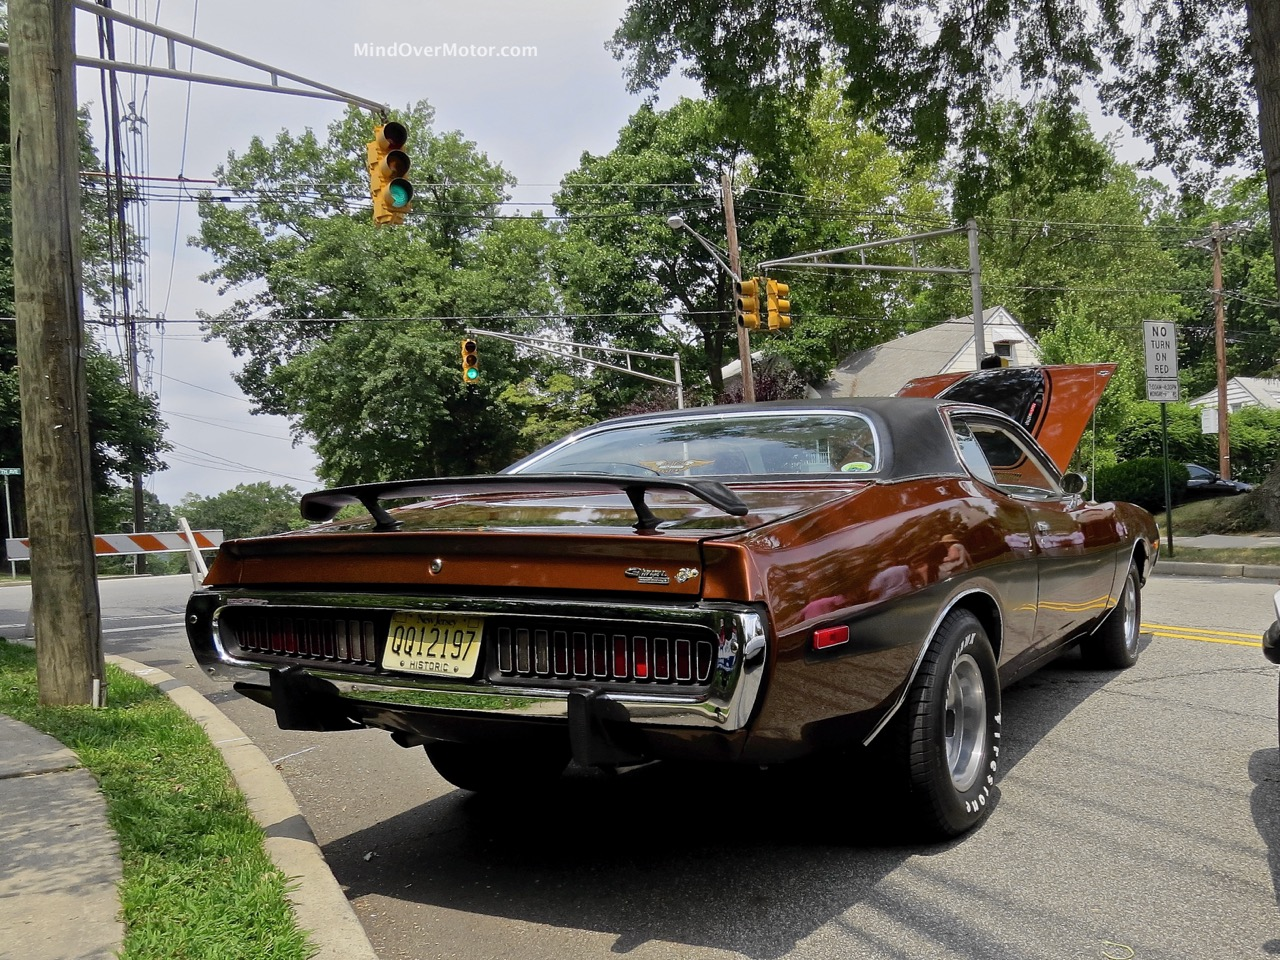 1974 Dodge Charger Rear 2